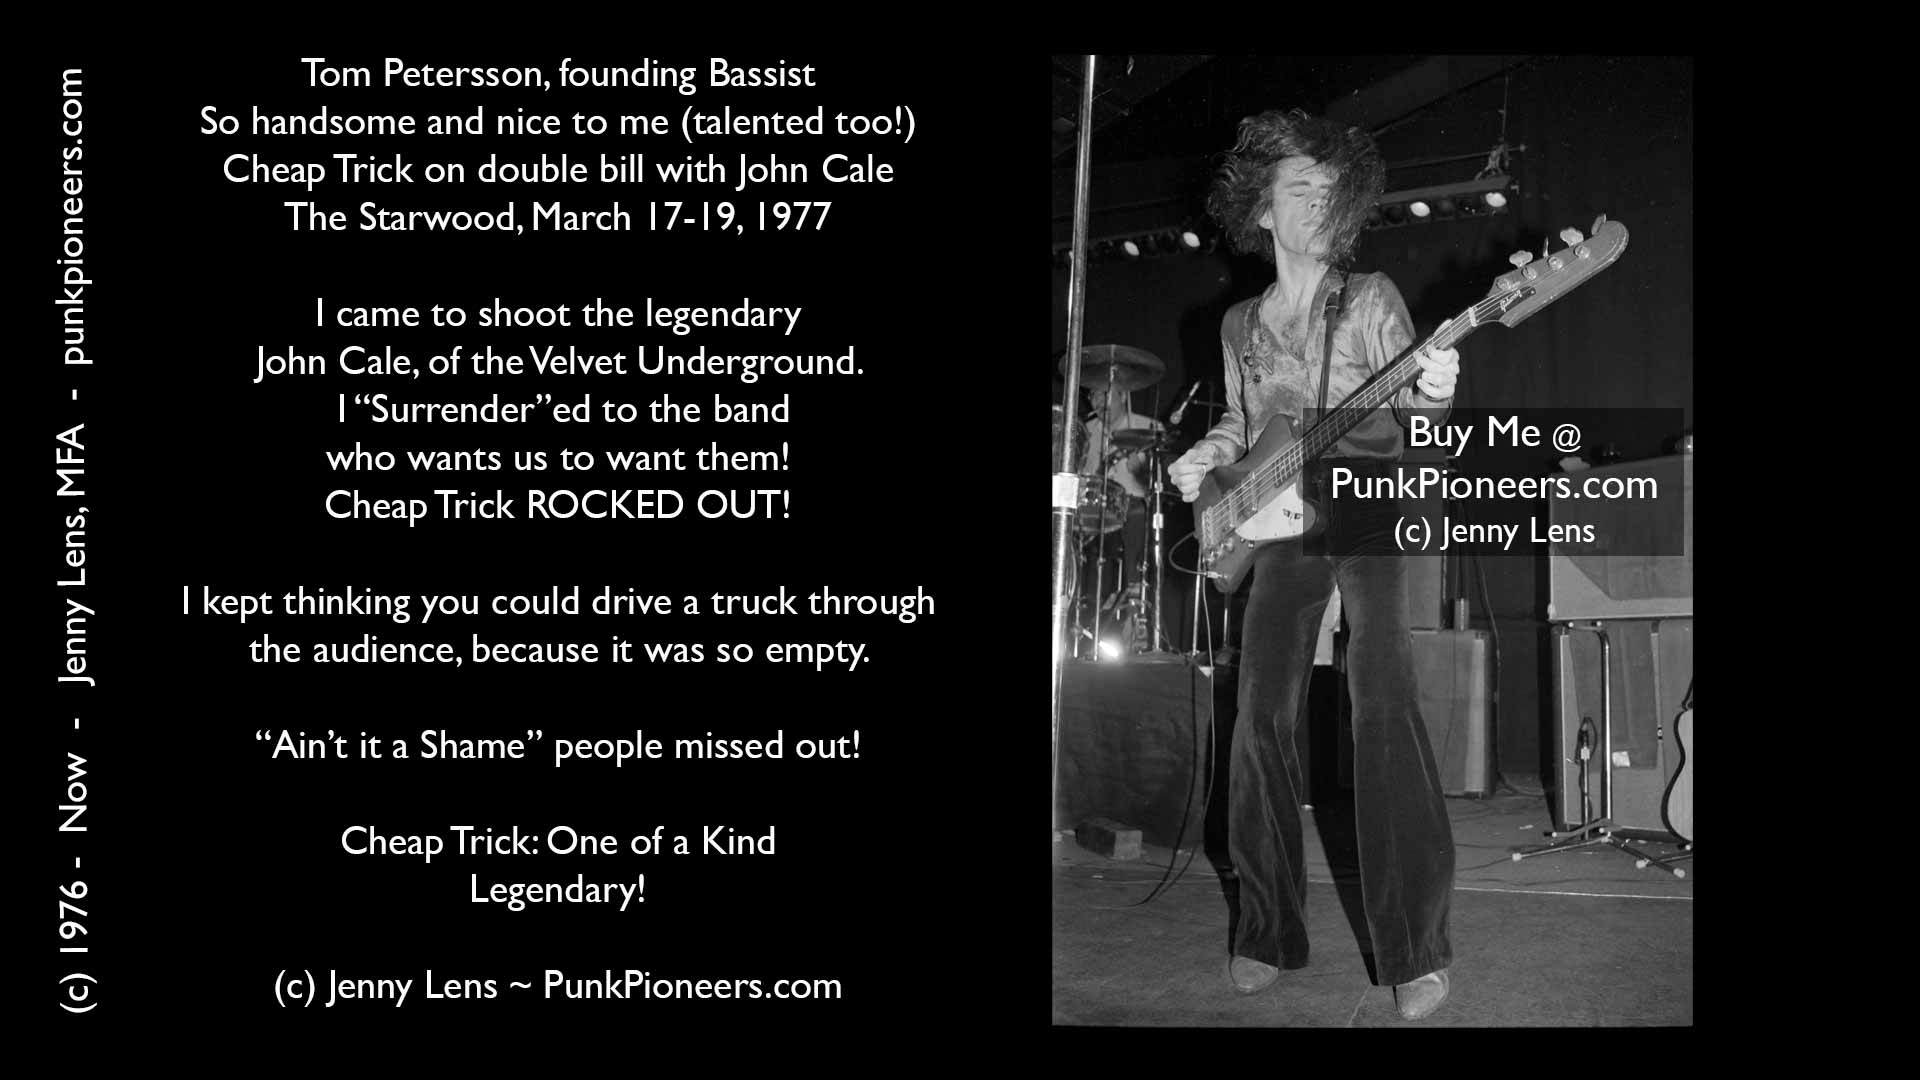 Cheap Trick, Tom Petersson, Starwood, March 1977, Jenny Lens, PunkPioneers.com